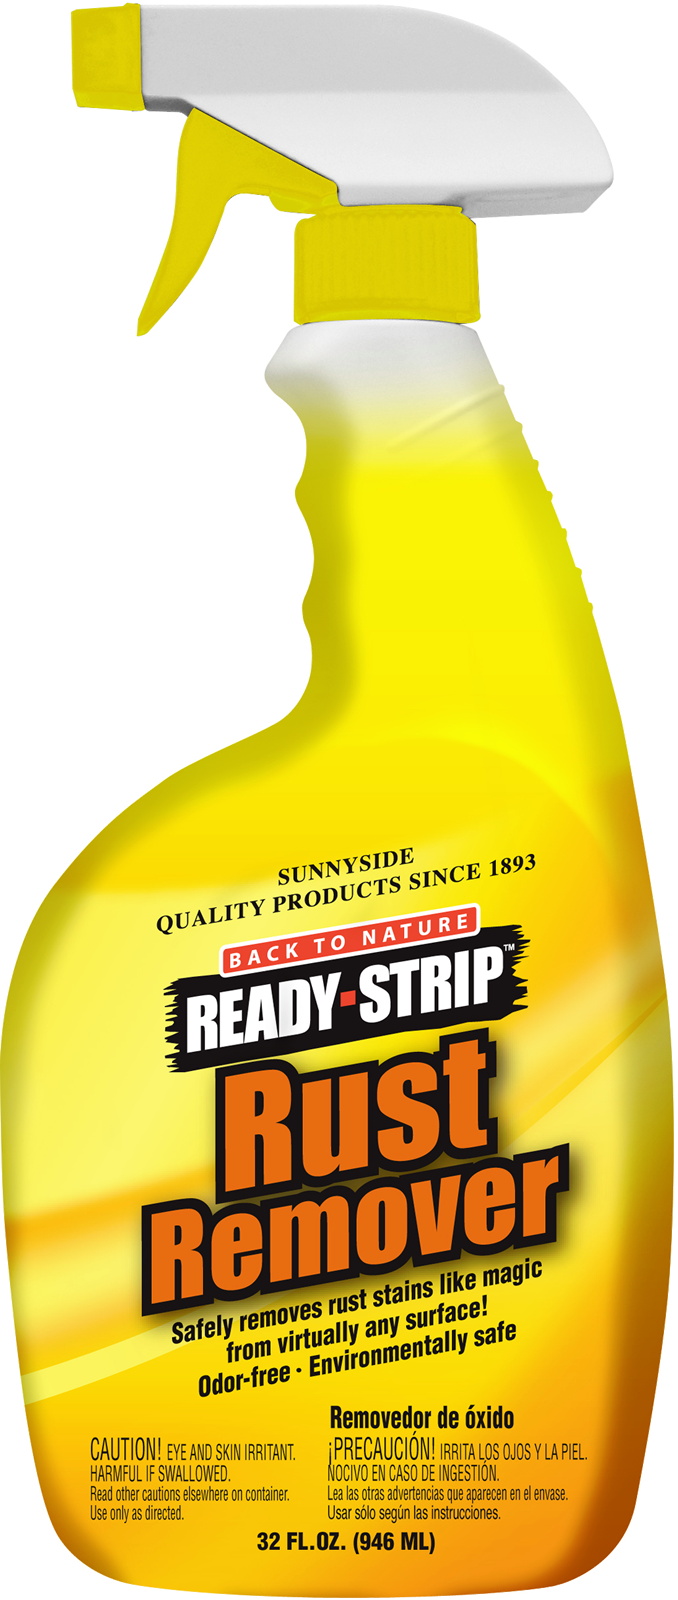 BACK TO NATURE READY-STRIP RUST REMOVER Product Image